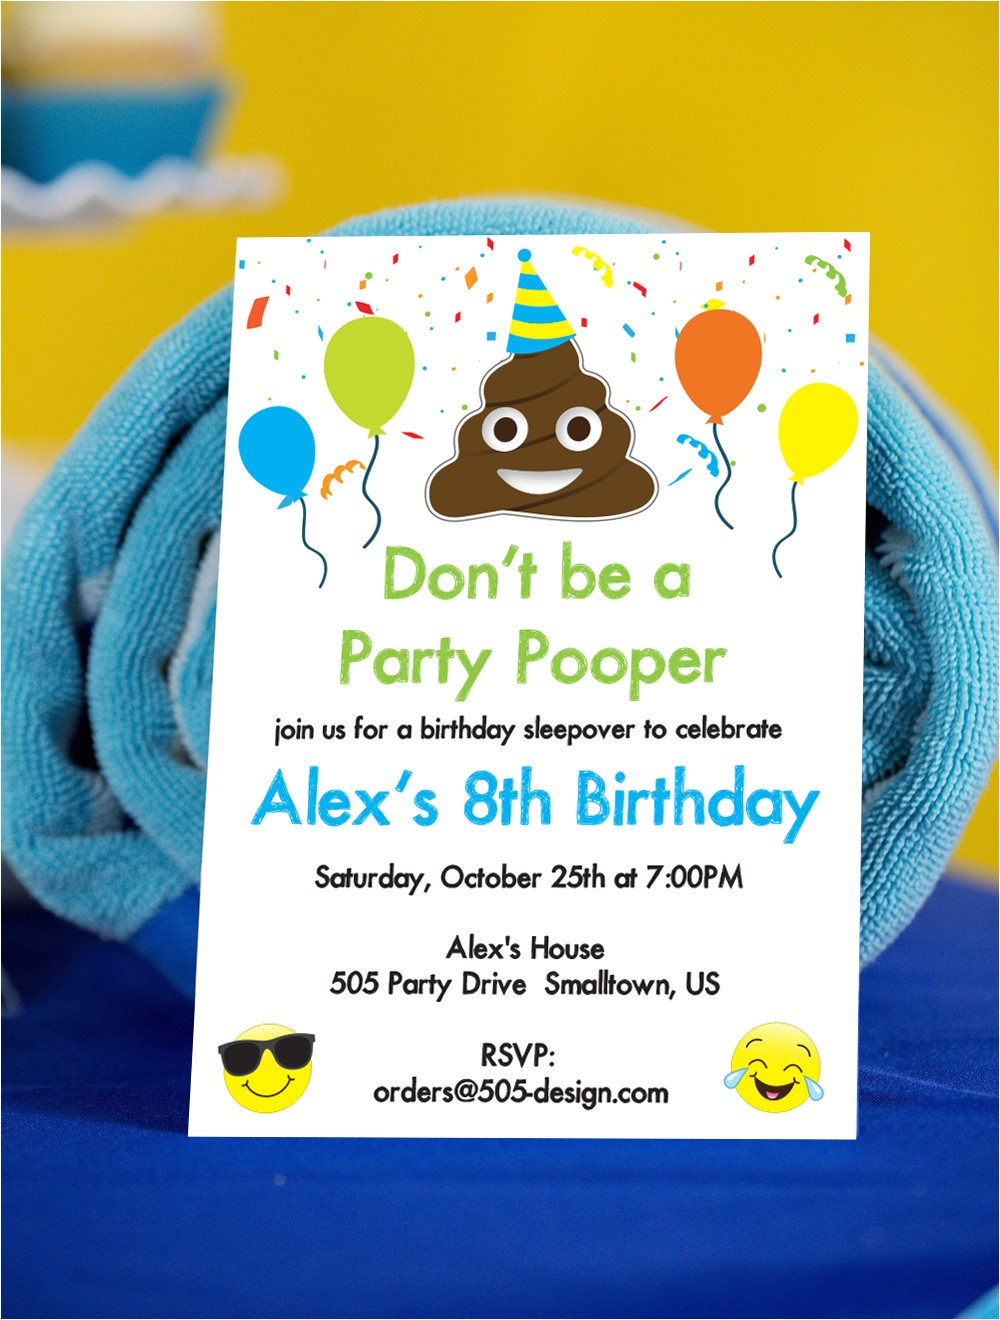 emoji party pooper invitation poop emoji invitation